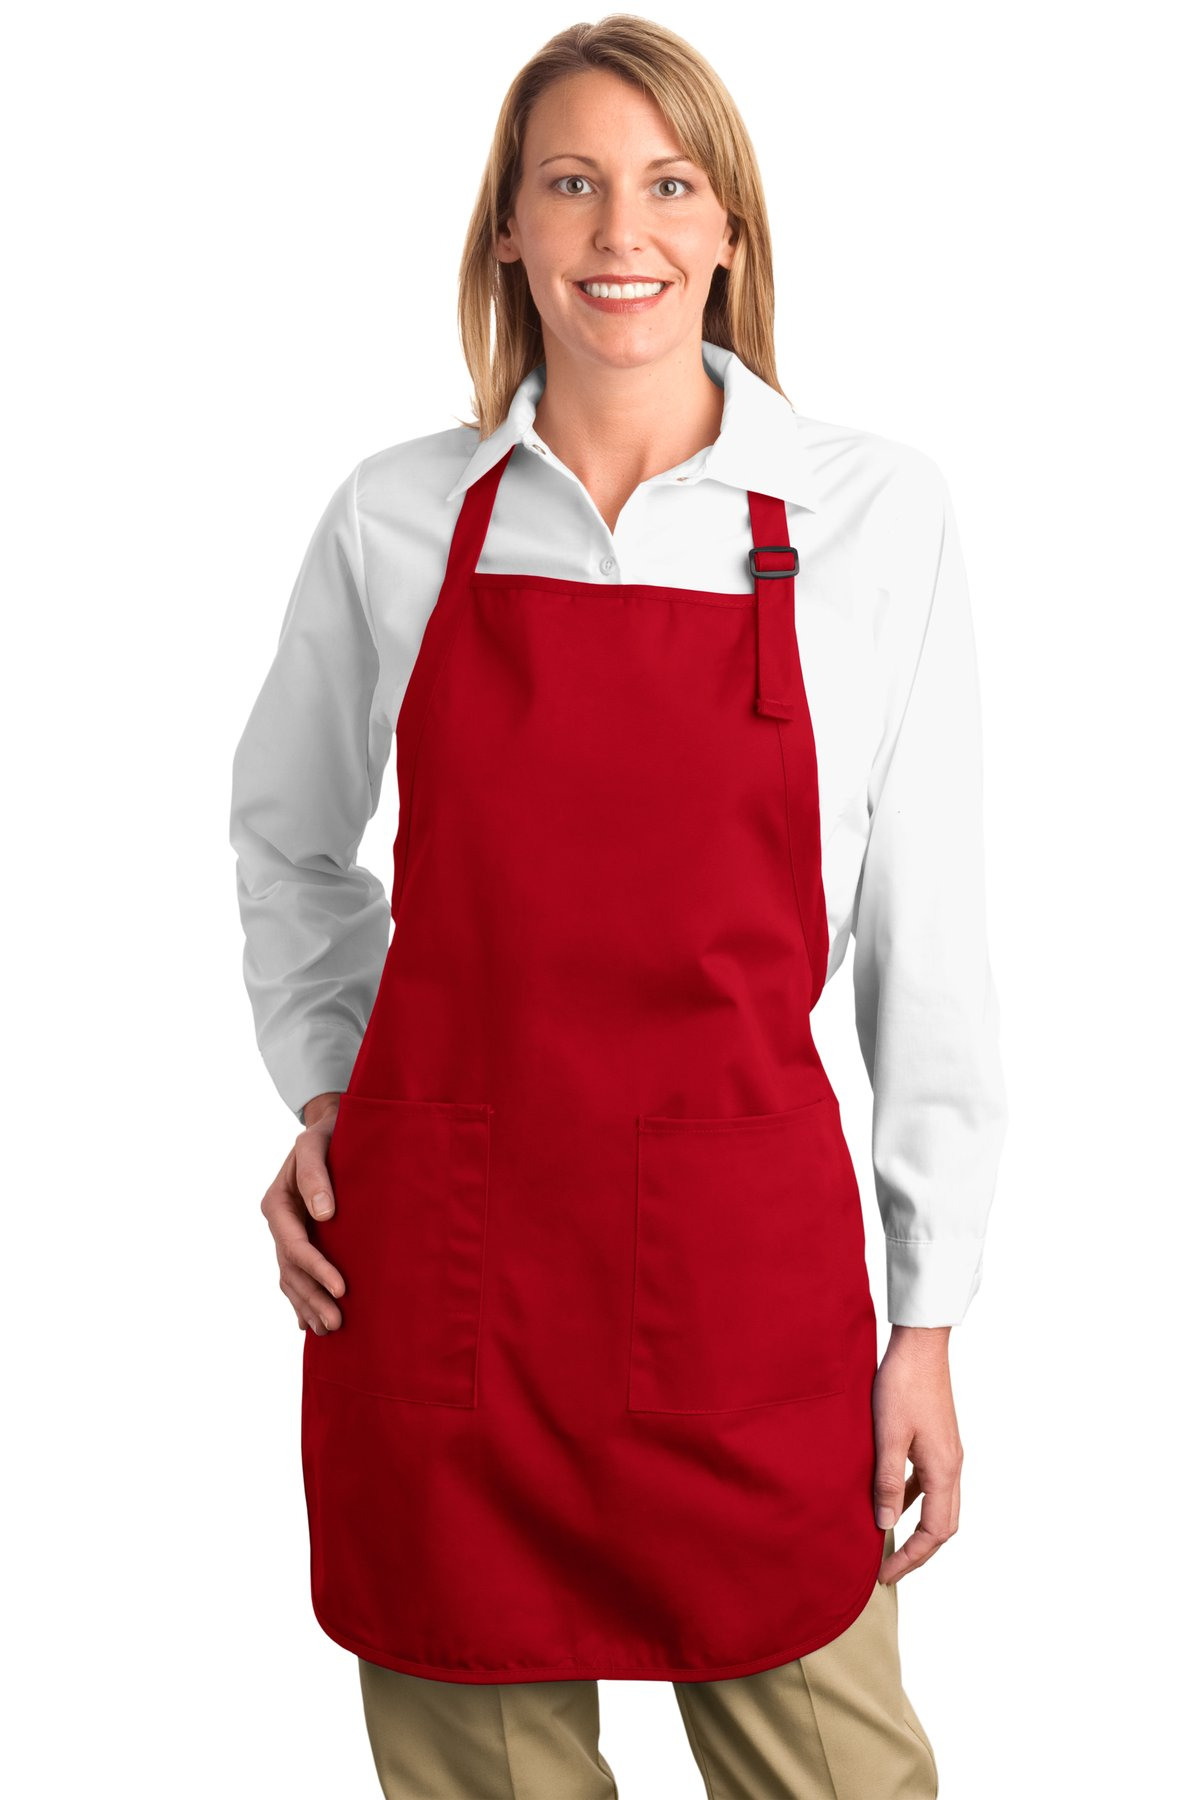 Port Authority ®  Full-Length Apron with Pockets.  A500 - Red